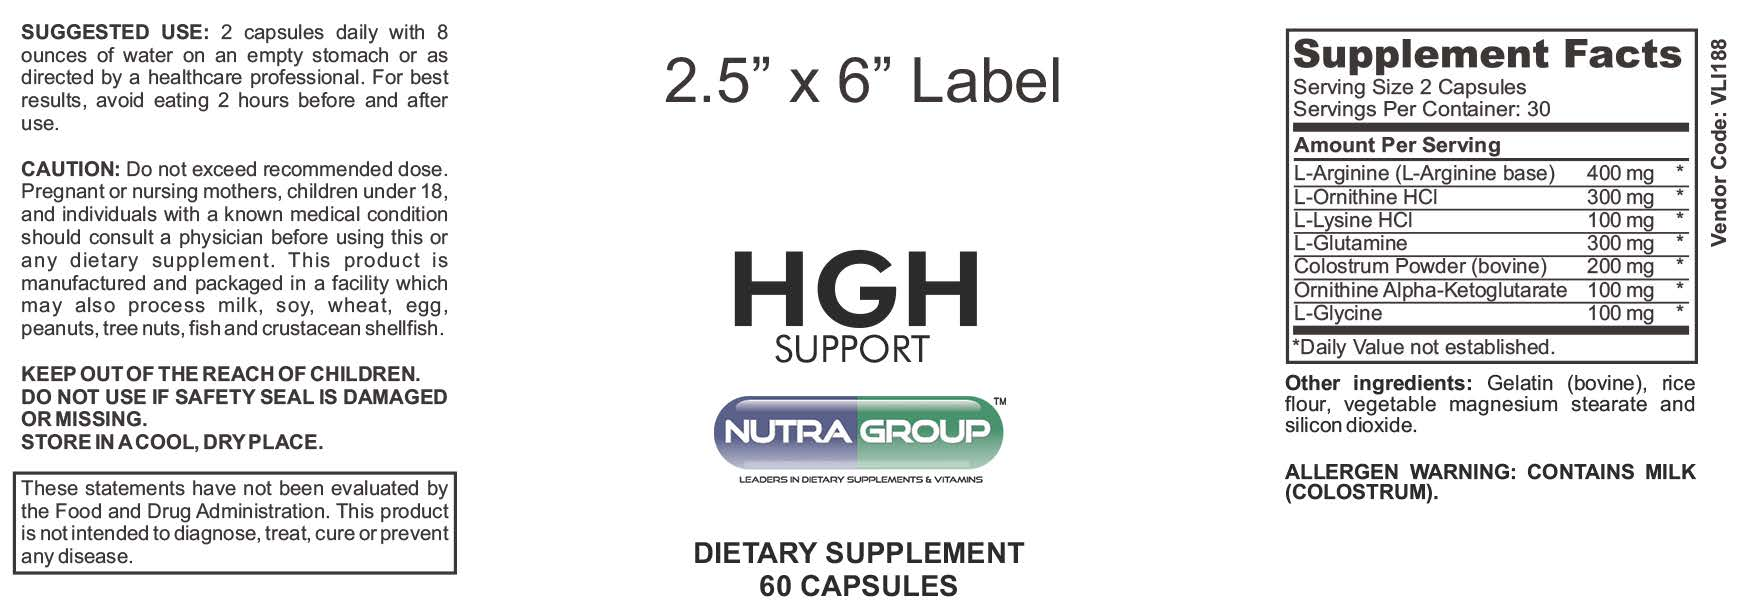 hgh supplement | private label hgh supplements